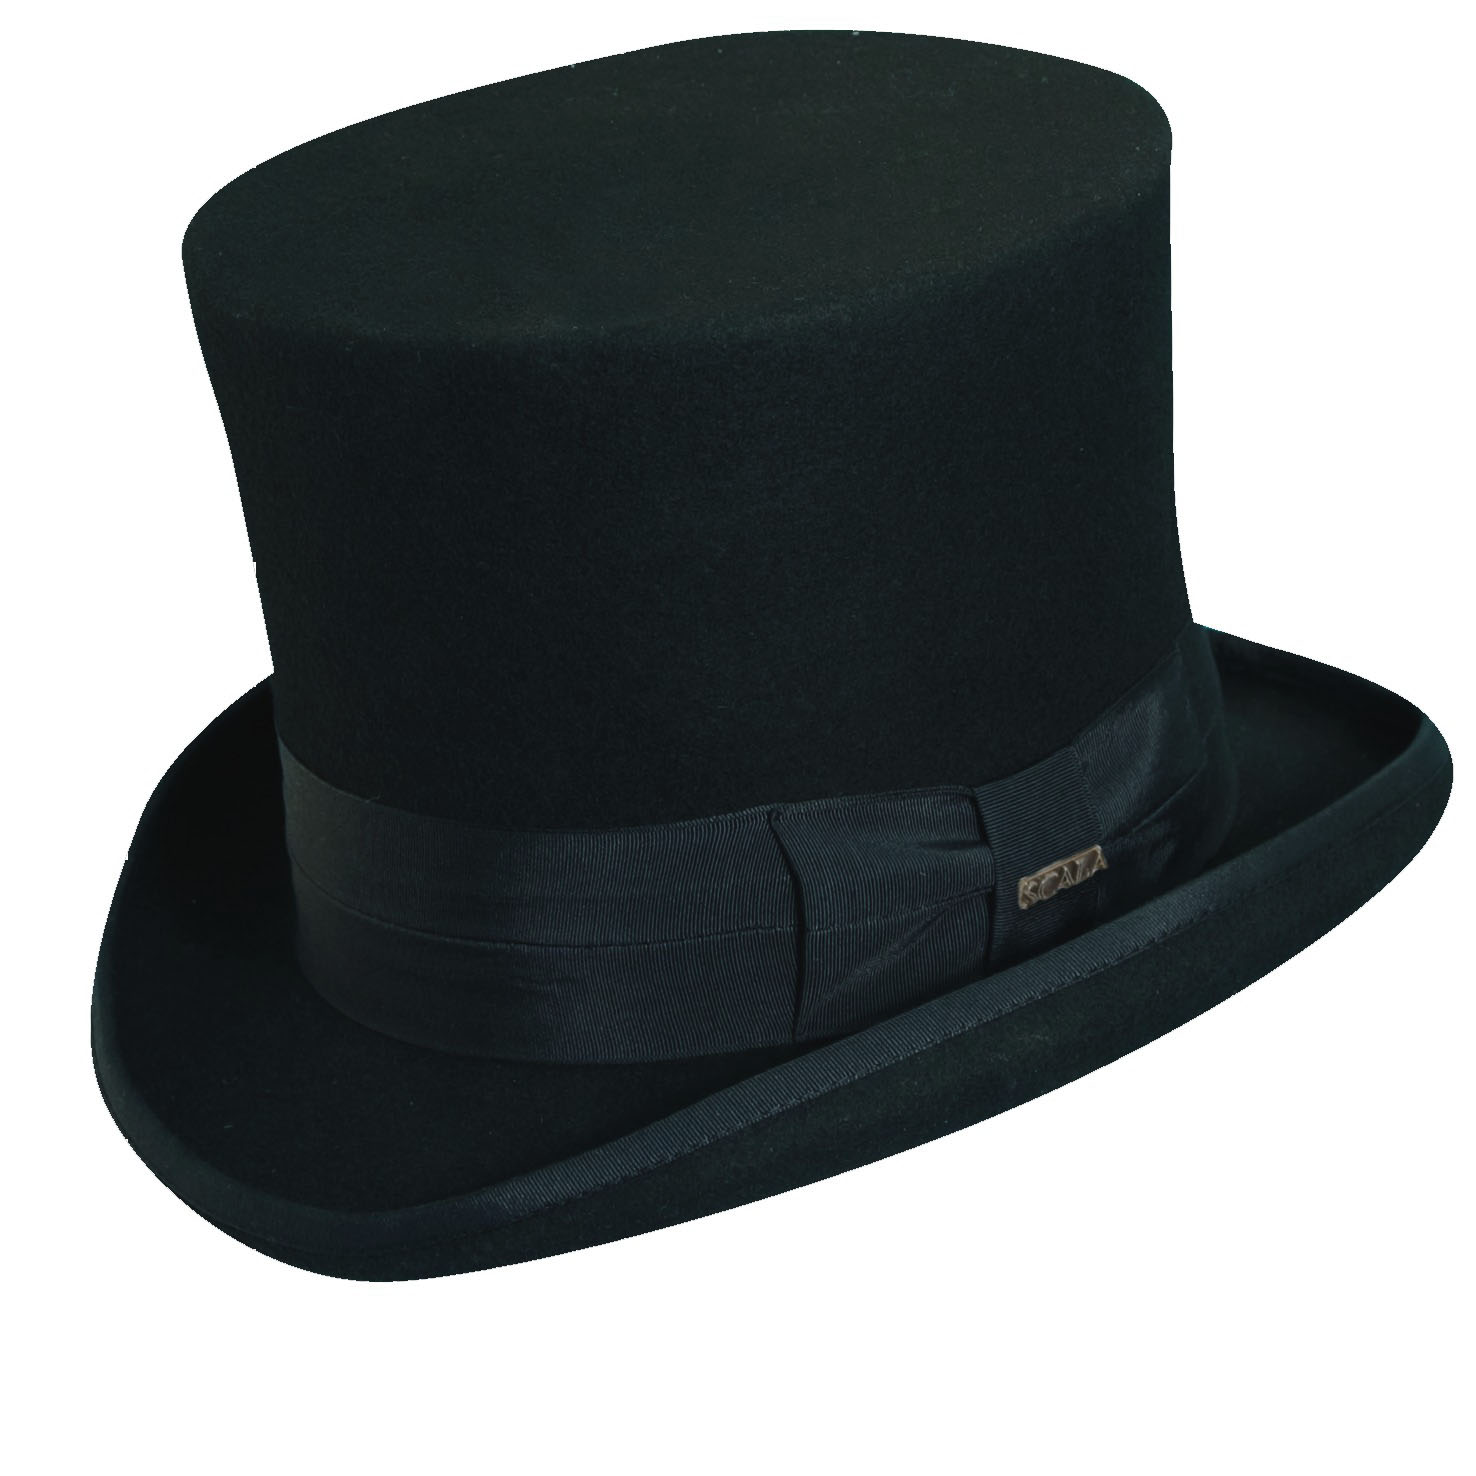 0f873dfff5e Wool Felt Top Hat with 7 inch Crown | Explorer Hats